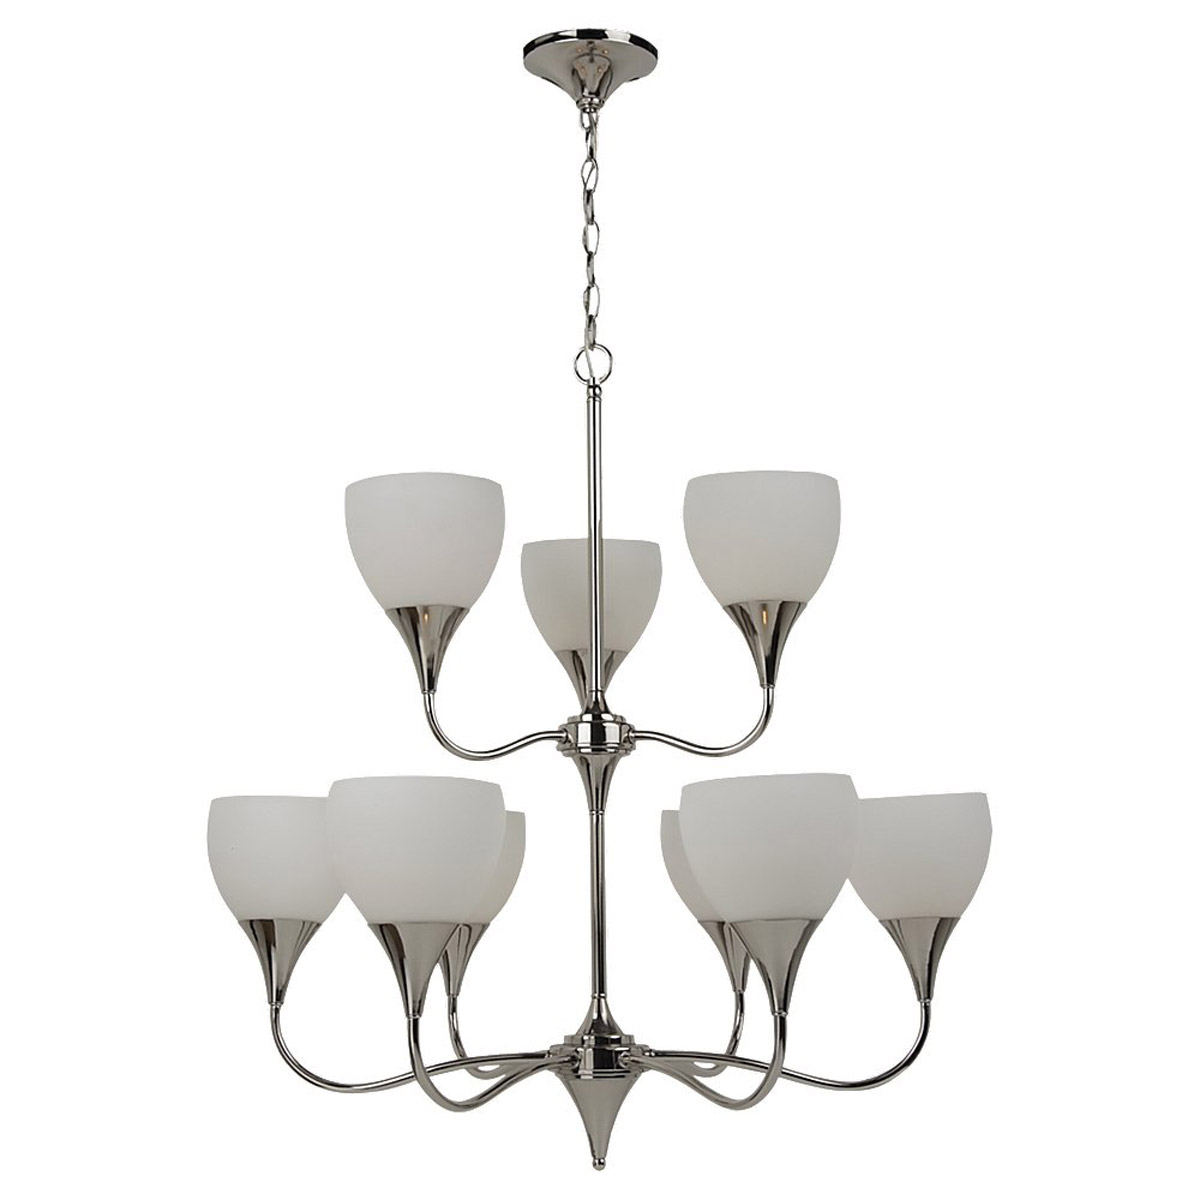 Sea Gull Lighting Solana 9 Light Chandelier in Polished Nickel 31971-841 photo